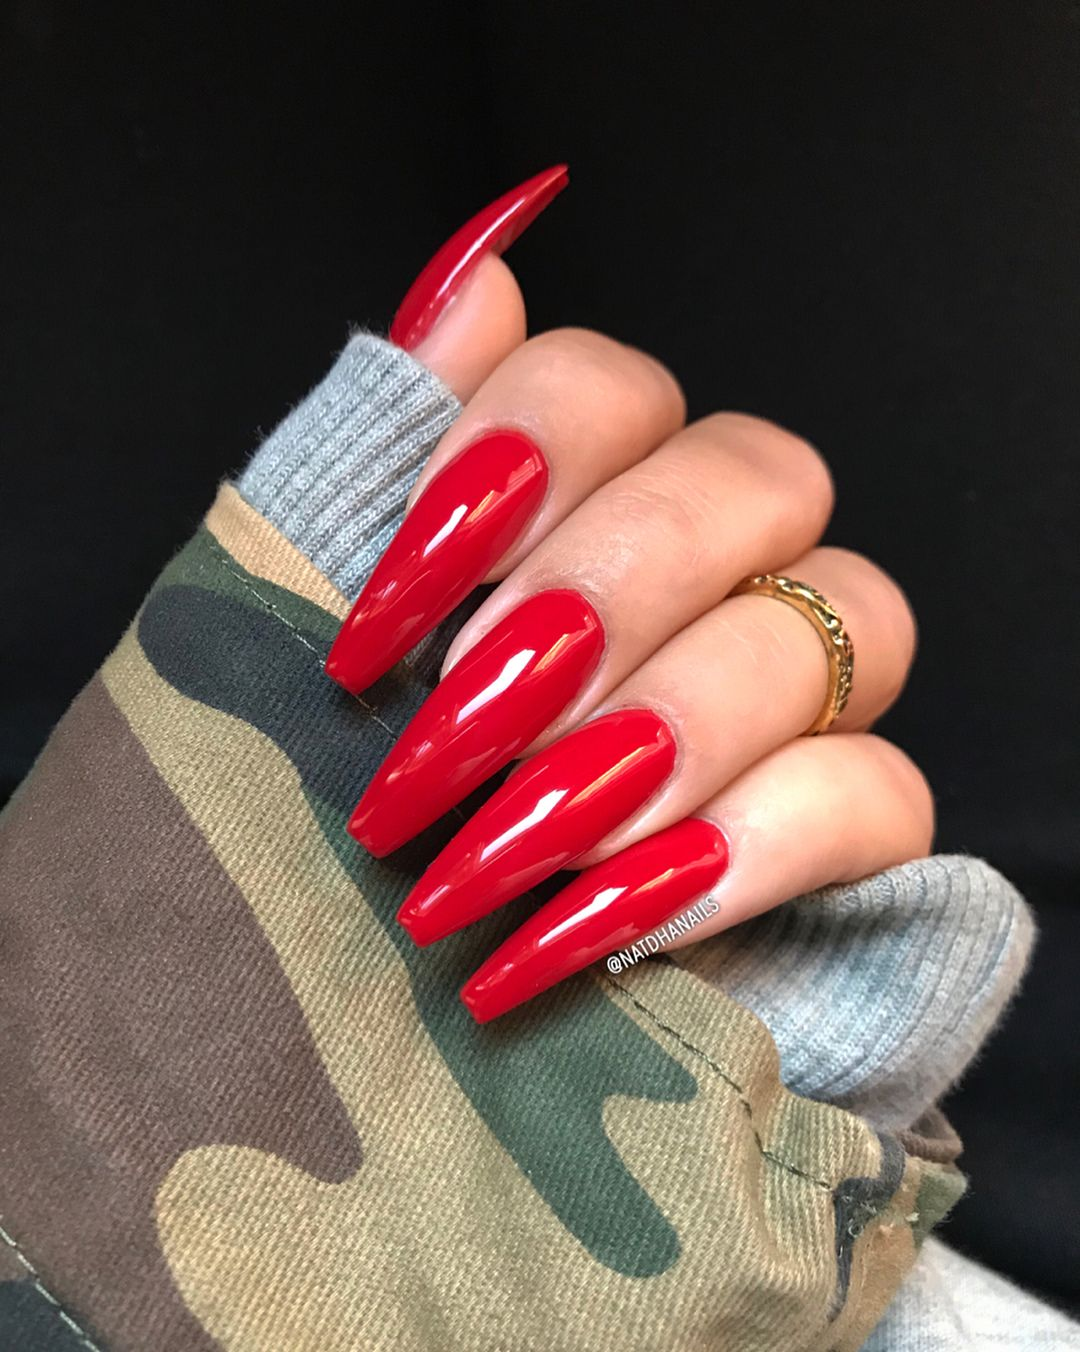 Long Acrylic Nails Red Manicure Manicures Army Green And Gold Black Strong Double Team